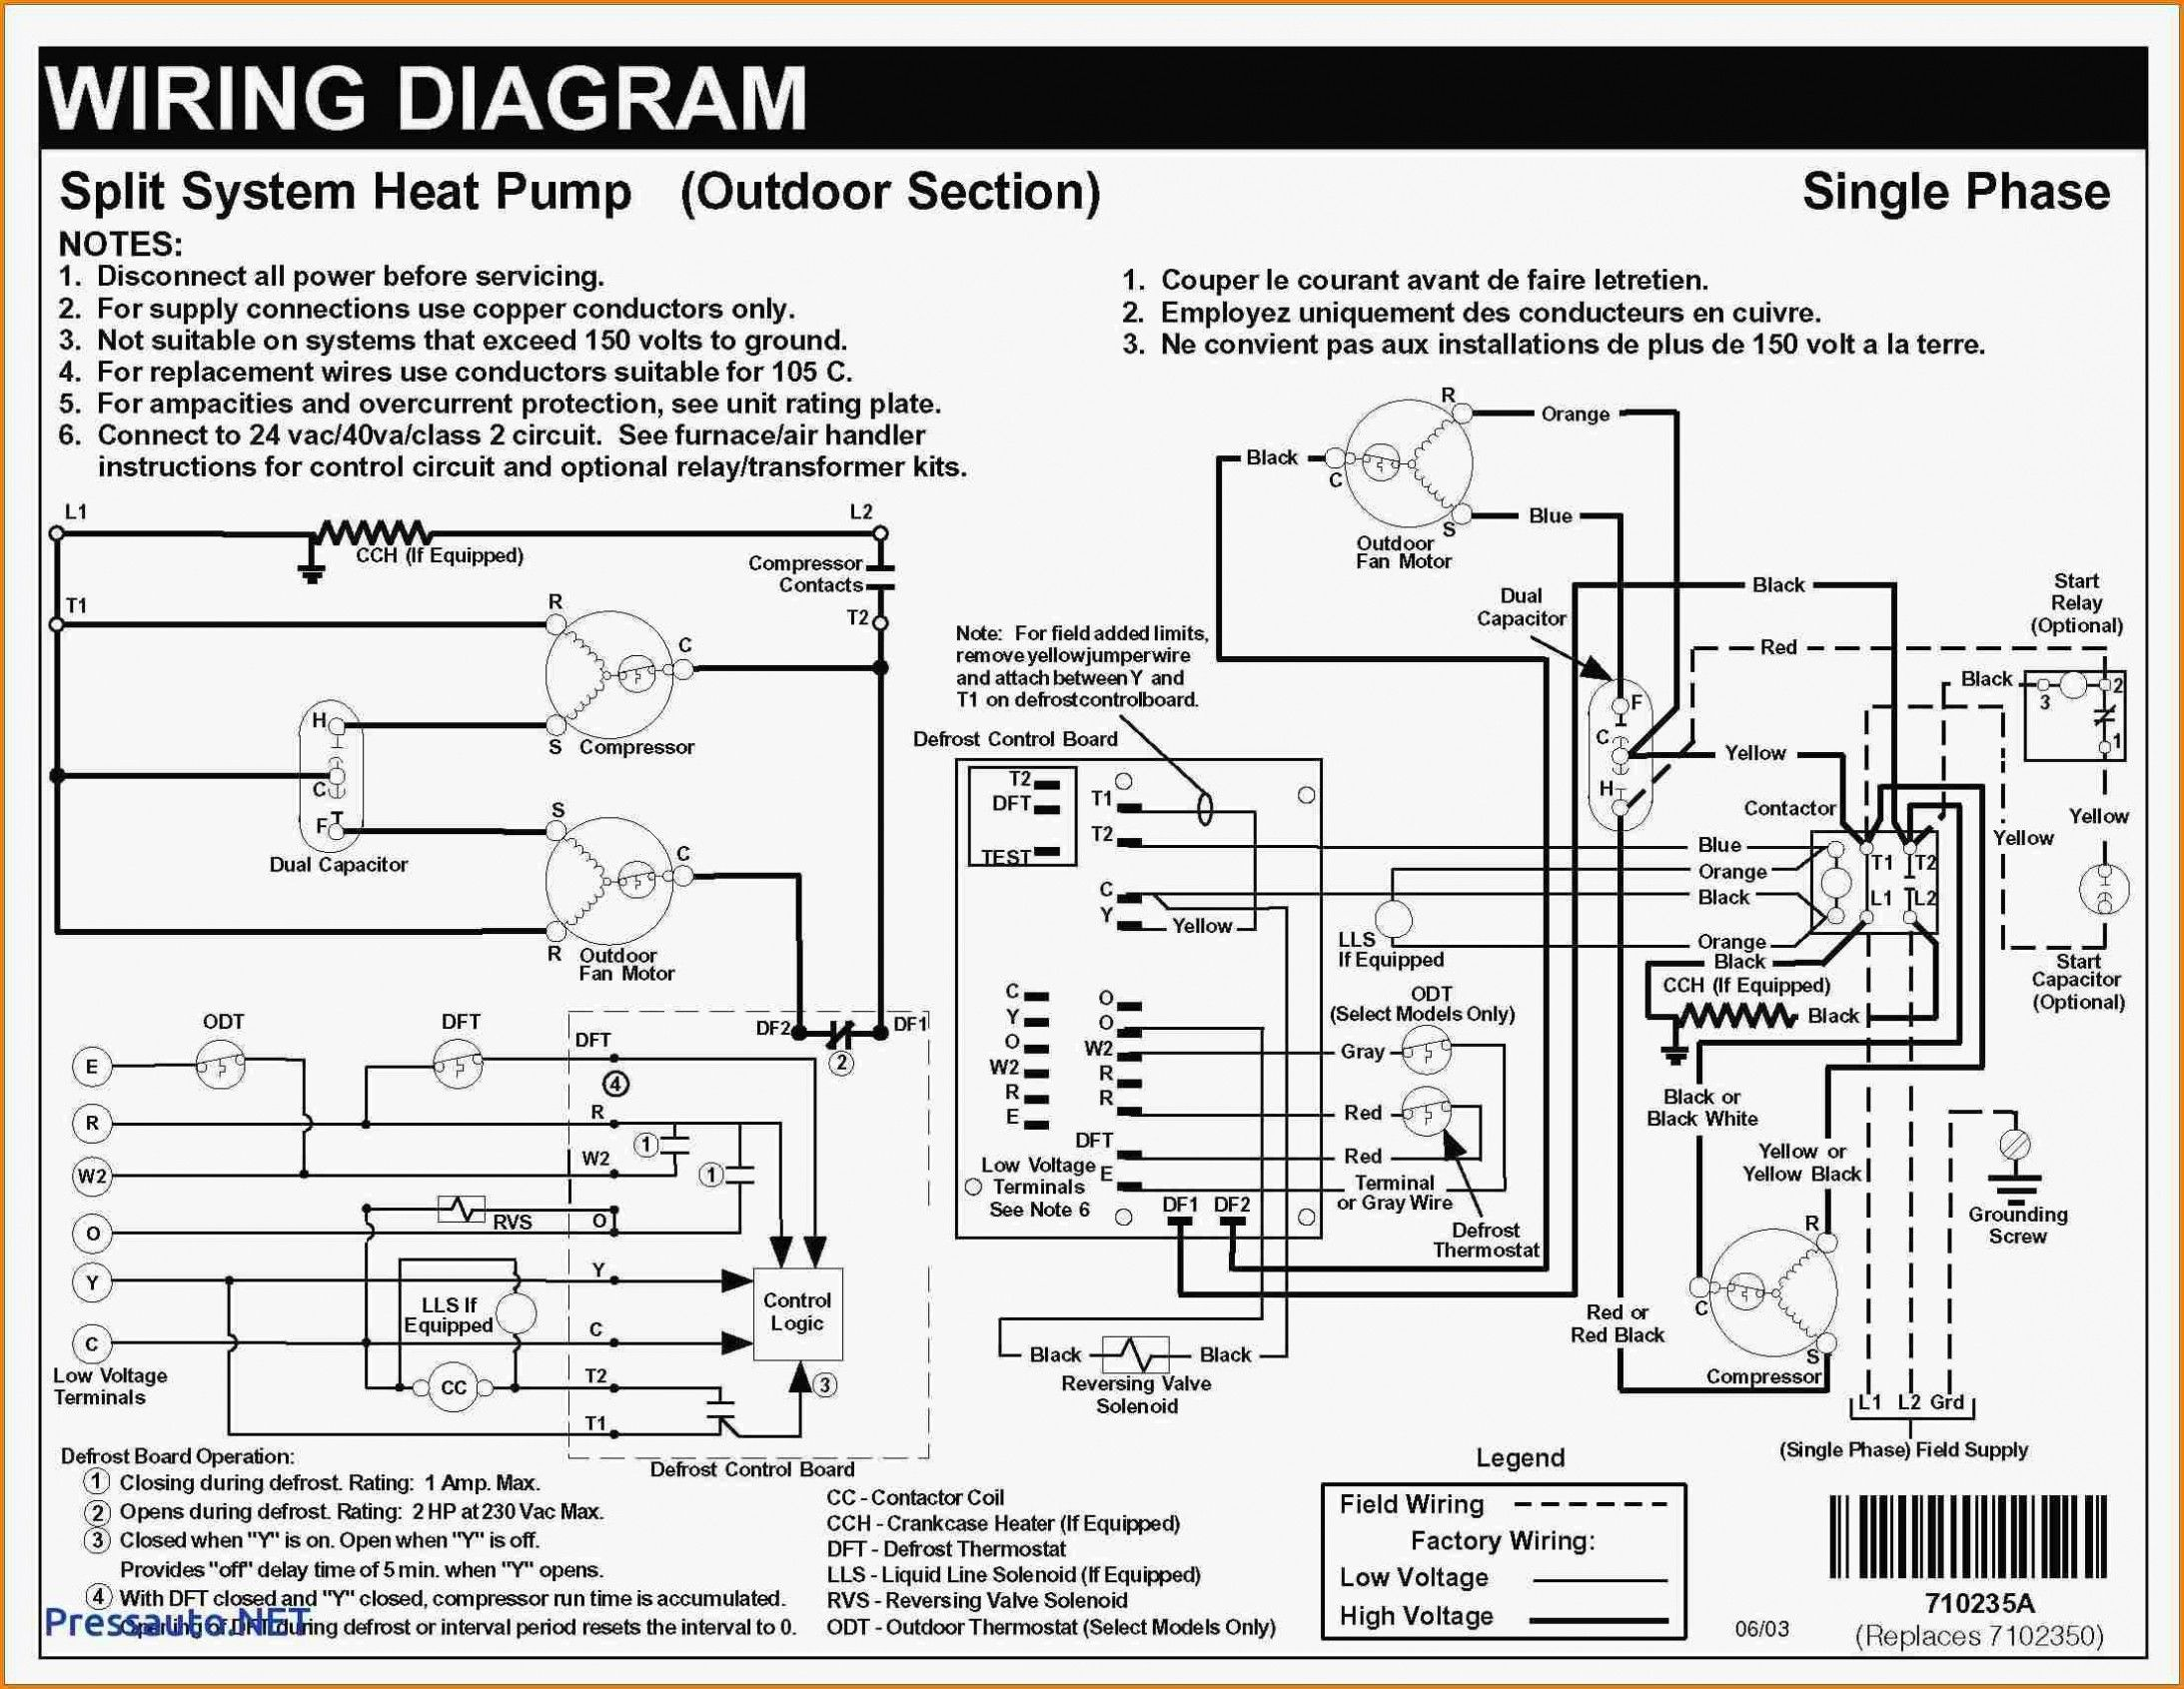 Unique Wiring Diagram for American Standard Gas Furnace #diagram  #diagramsample #diagramtemplate #wiringdiagram #… | Thermostat wiring, Heat  pump, Carrier heat pumpPinterest